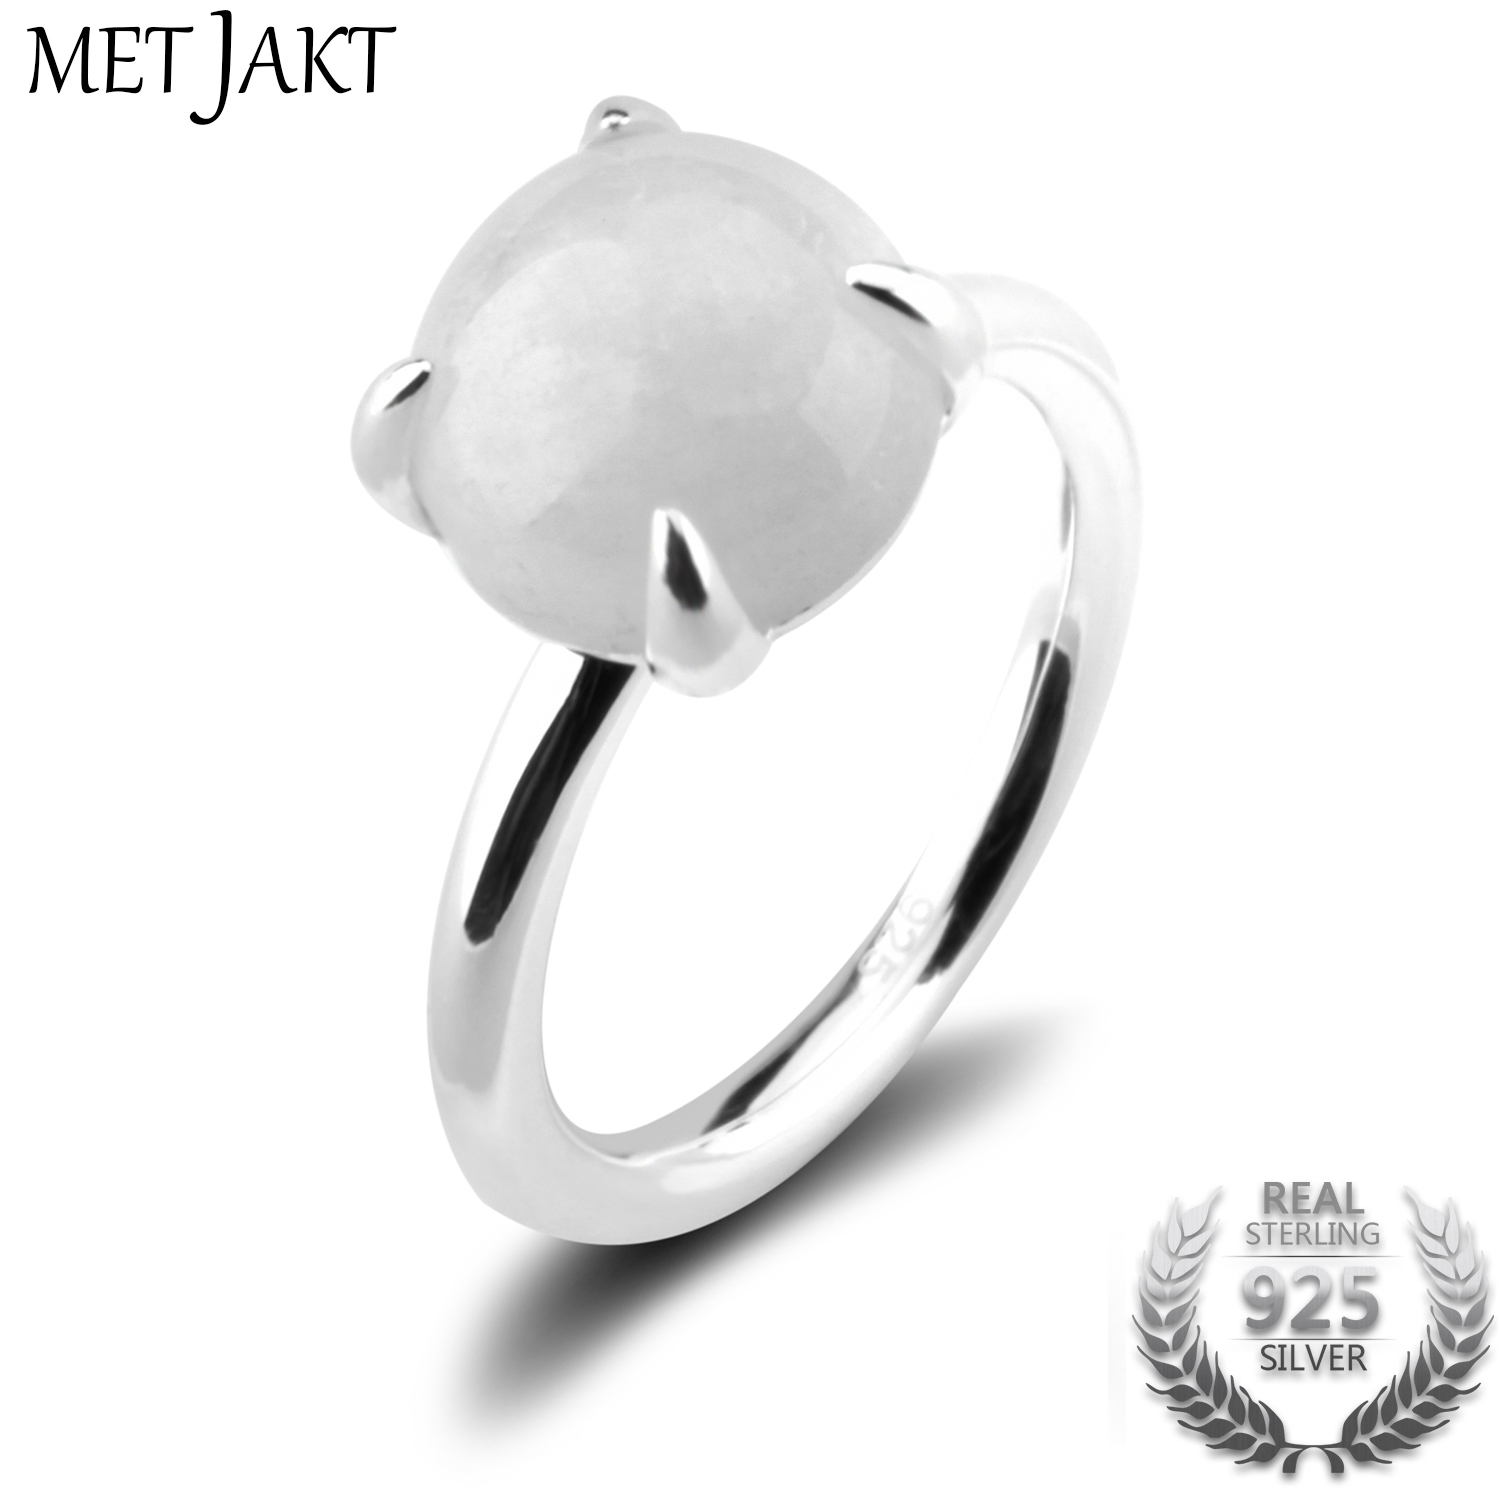 MetJakt Natural Moonstone Rings Solid 925 Sterling Silver Ring for Ladies Occasions Vintage Luxury Jewelry